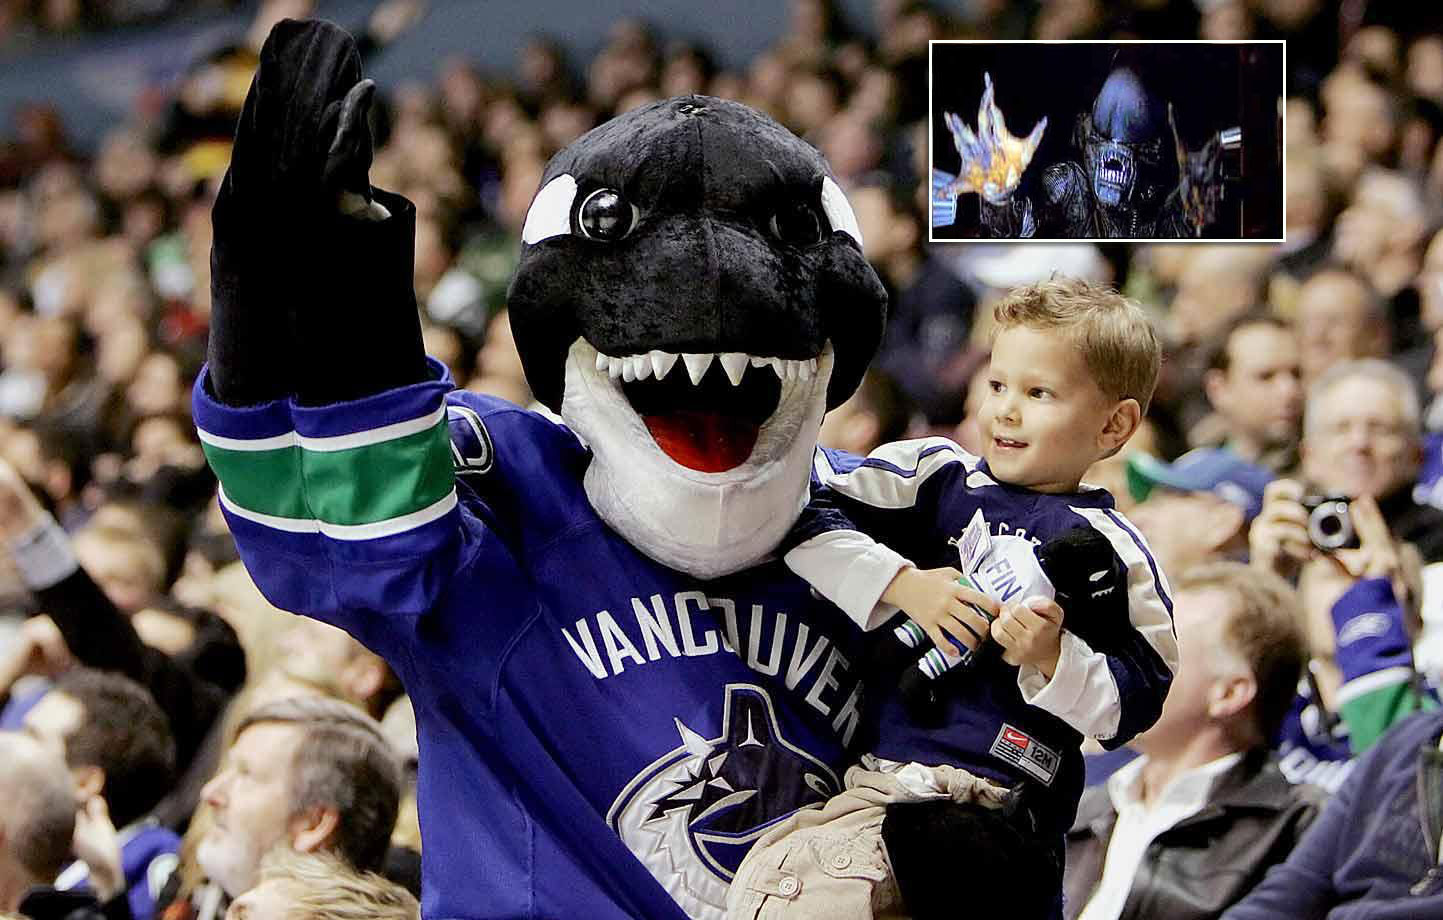 We get that he's supposed to be an orca like the one on the team's crest, but Fin's uncanny resemblance to the malevolent creature in the Alien movies is a bit unnerving. And he's often seen biting people's heads.